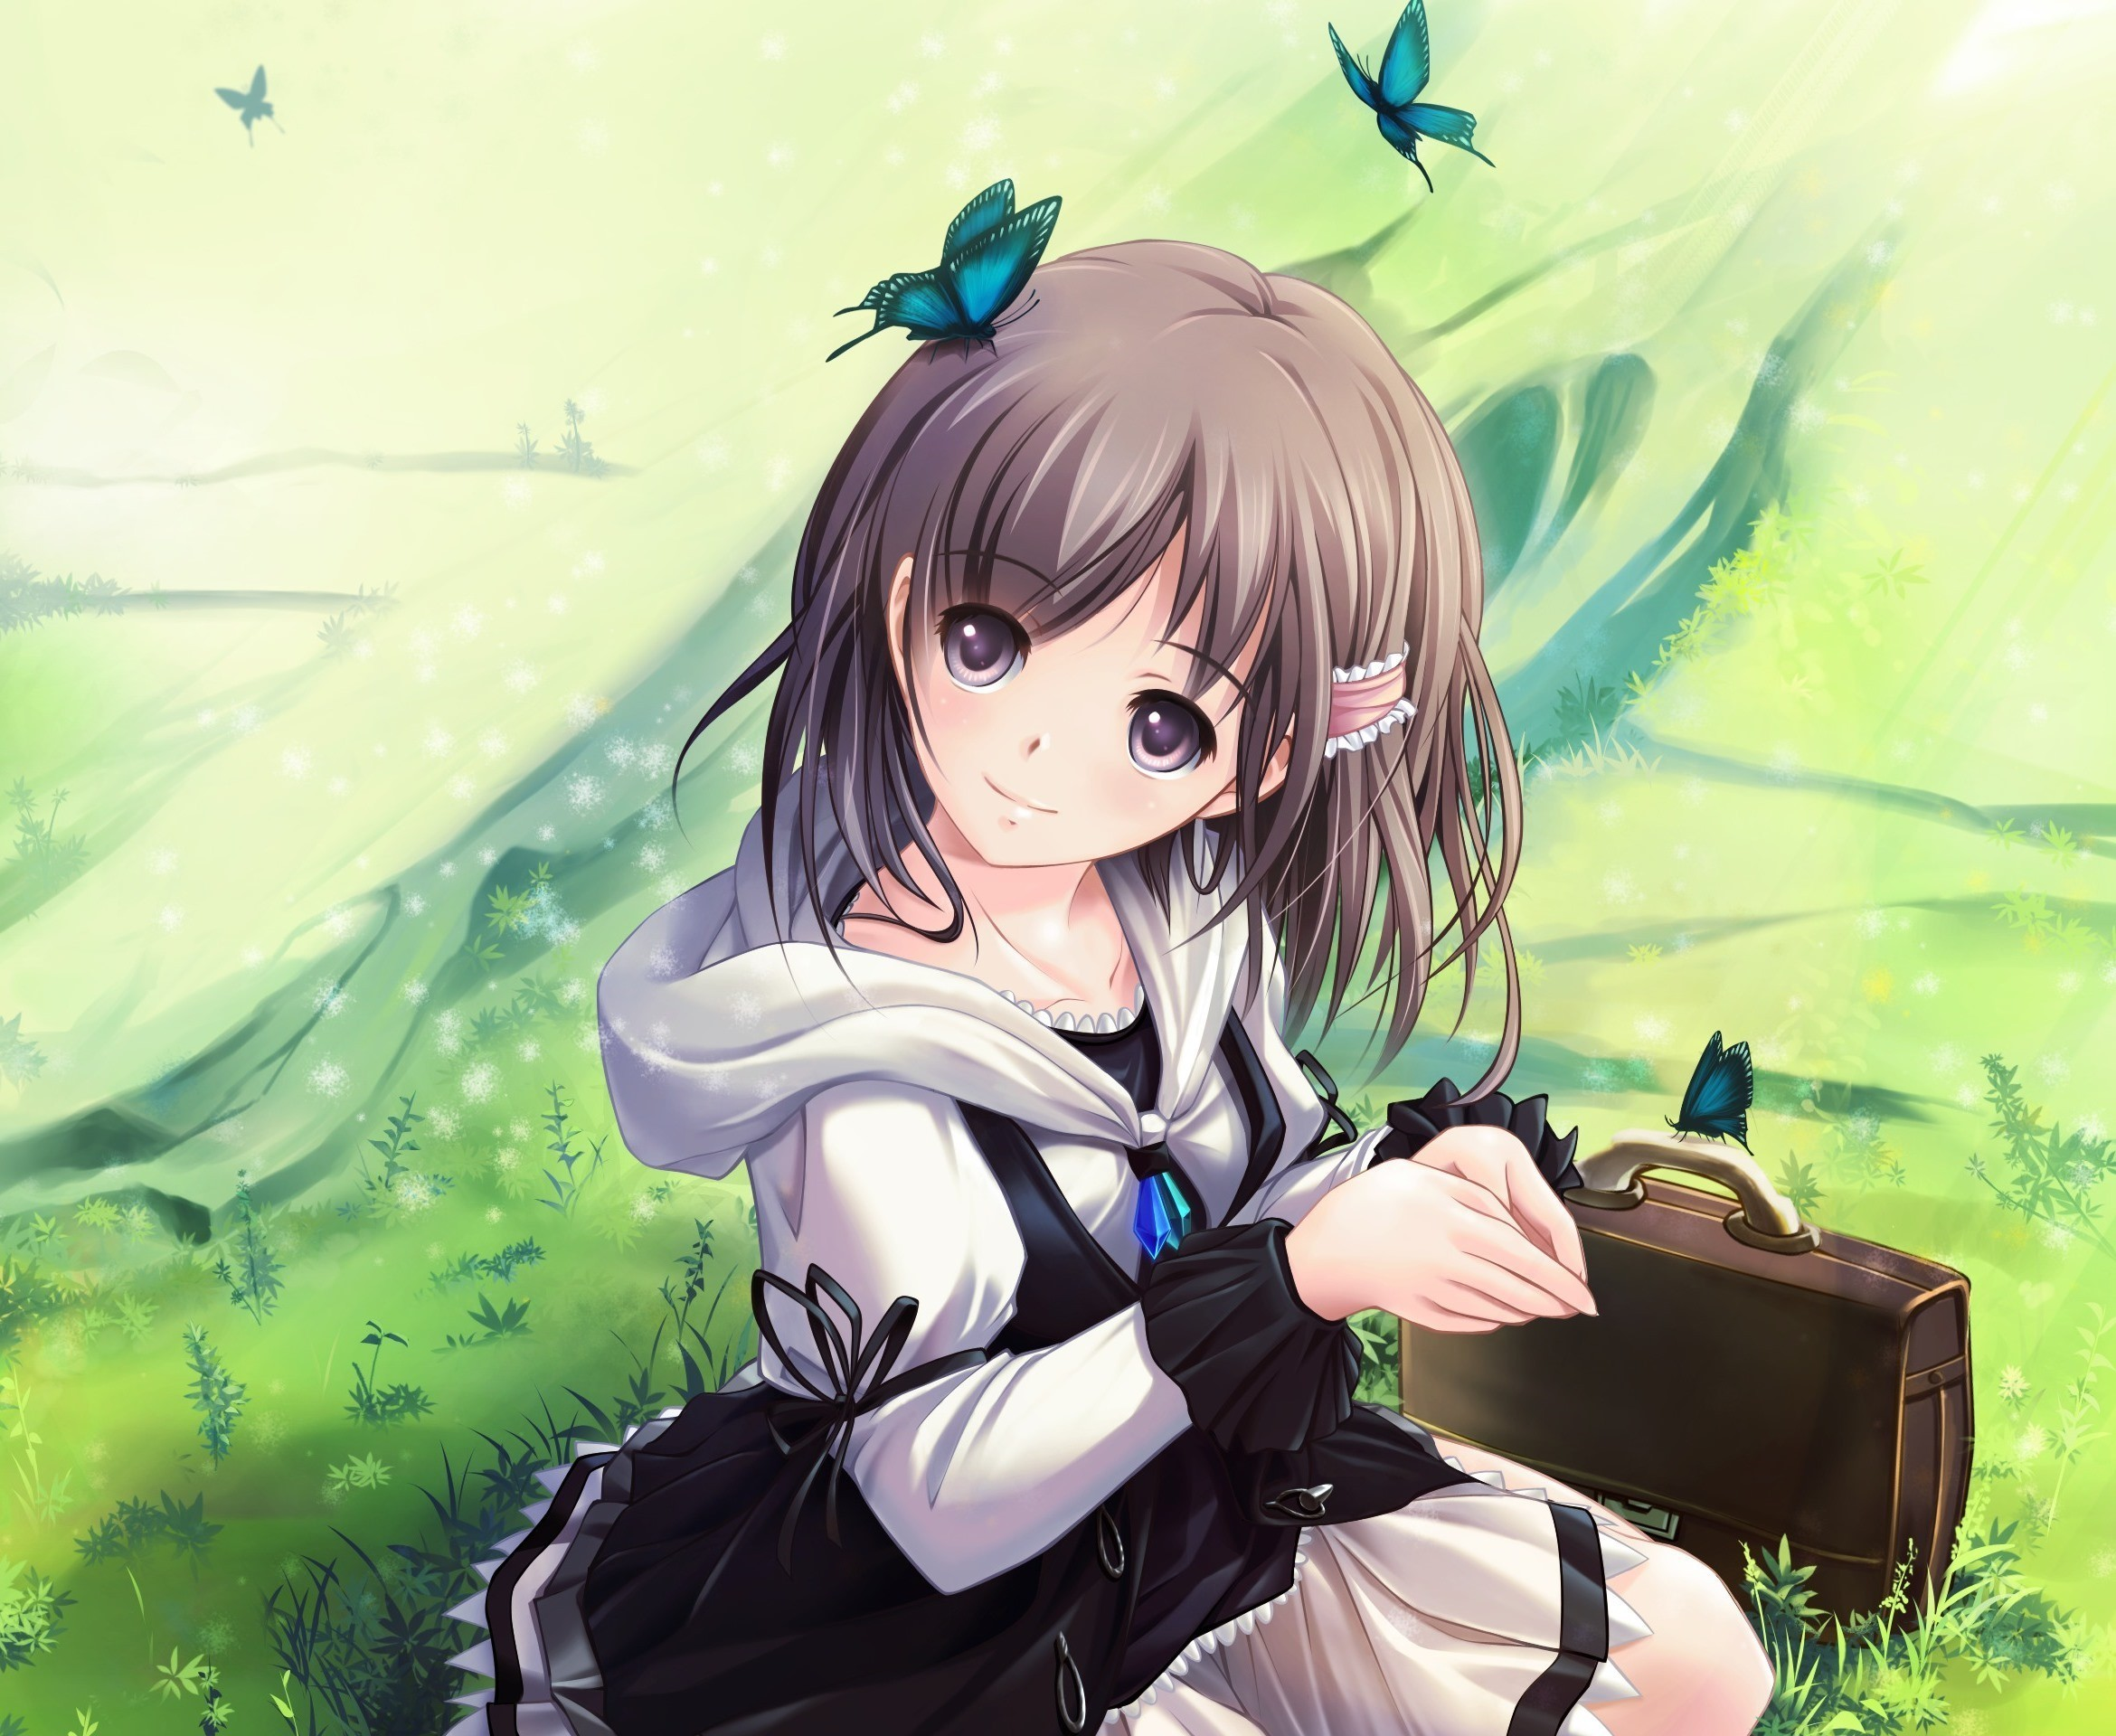 Anime girl hd wallpaper 1080p 83 images - Cute anime backgrounds ...